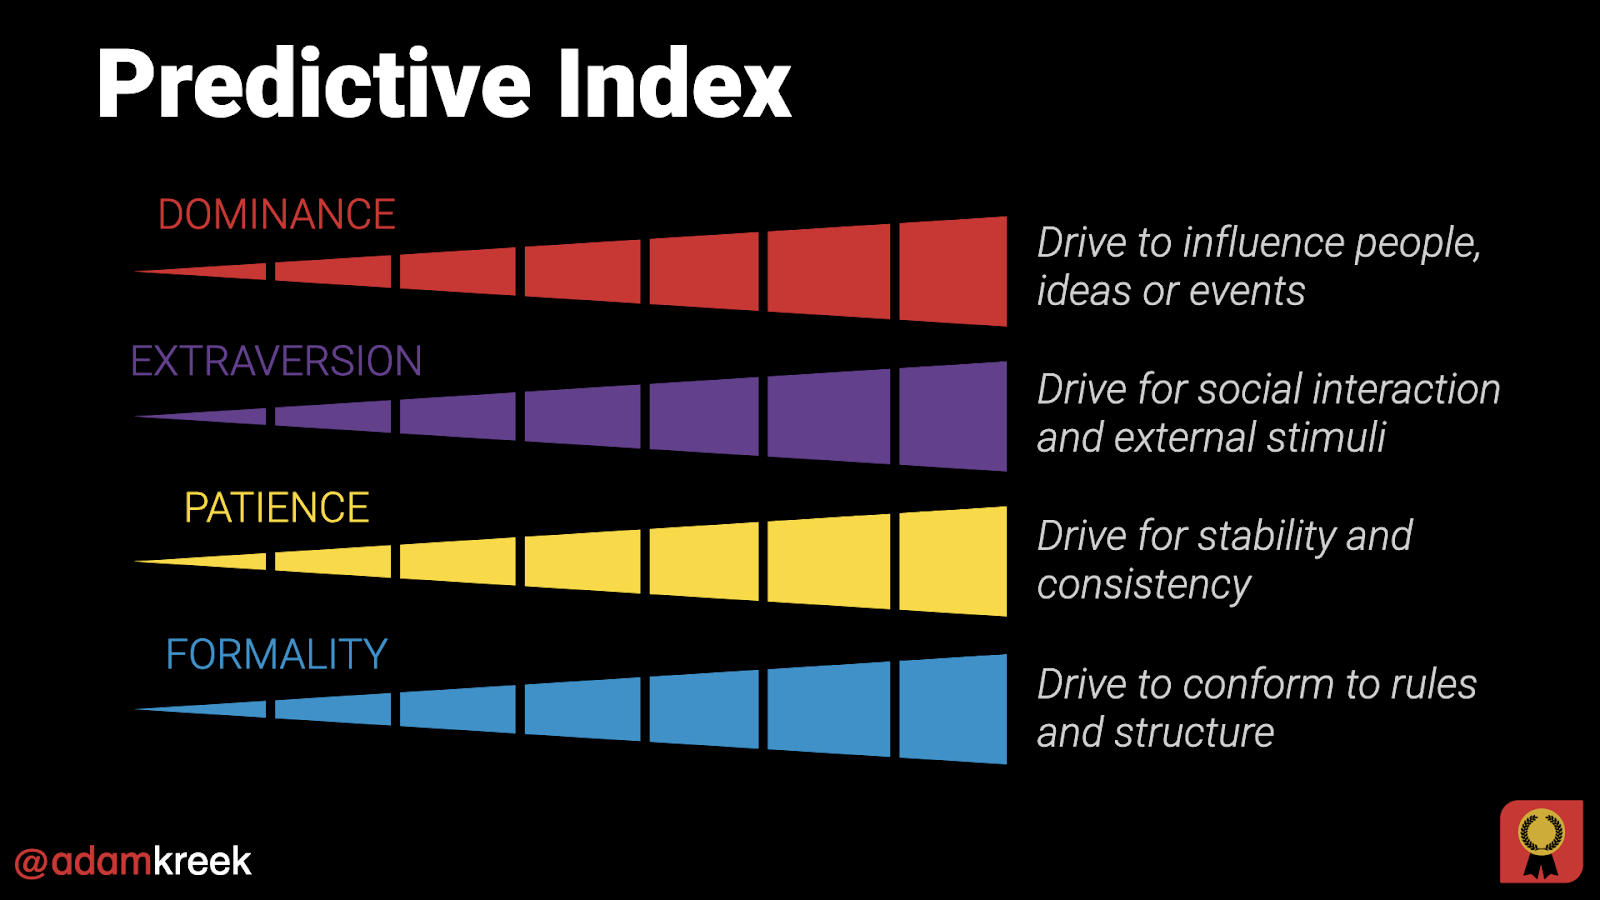 Predictive Index infographic